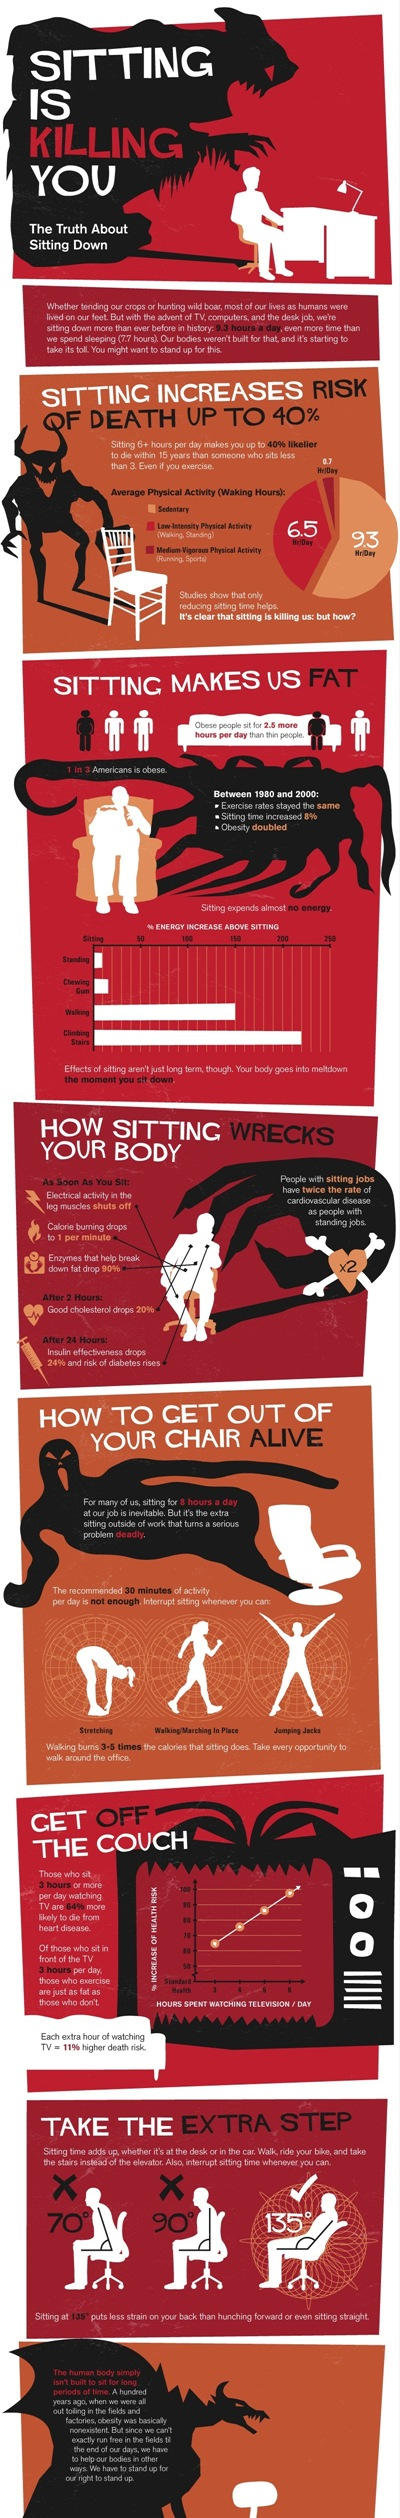 sitting-is-killing-you_50290c26c7c9e